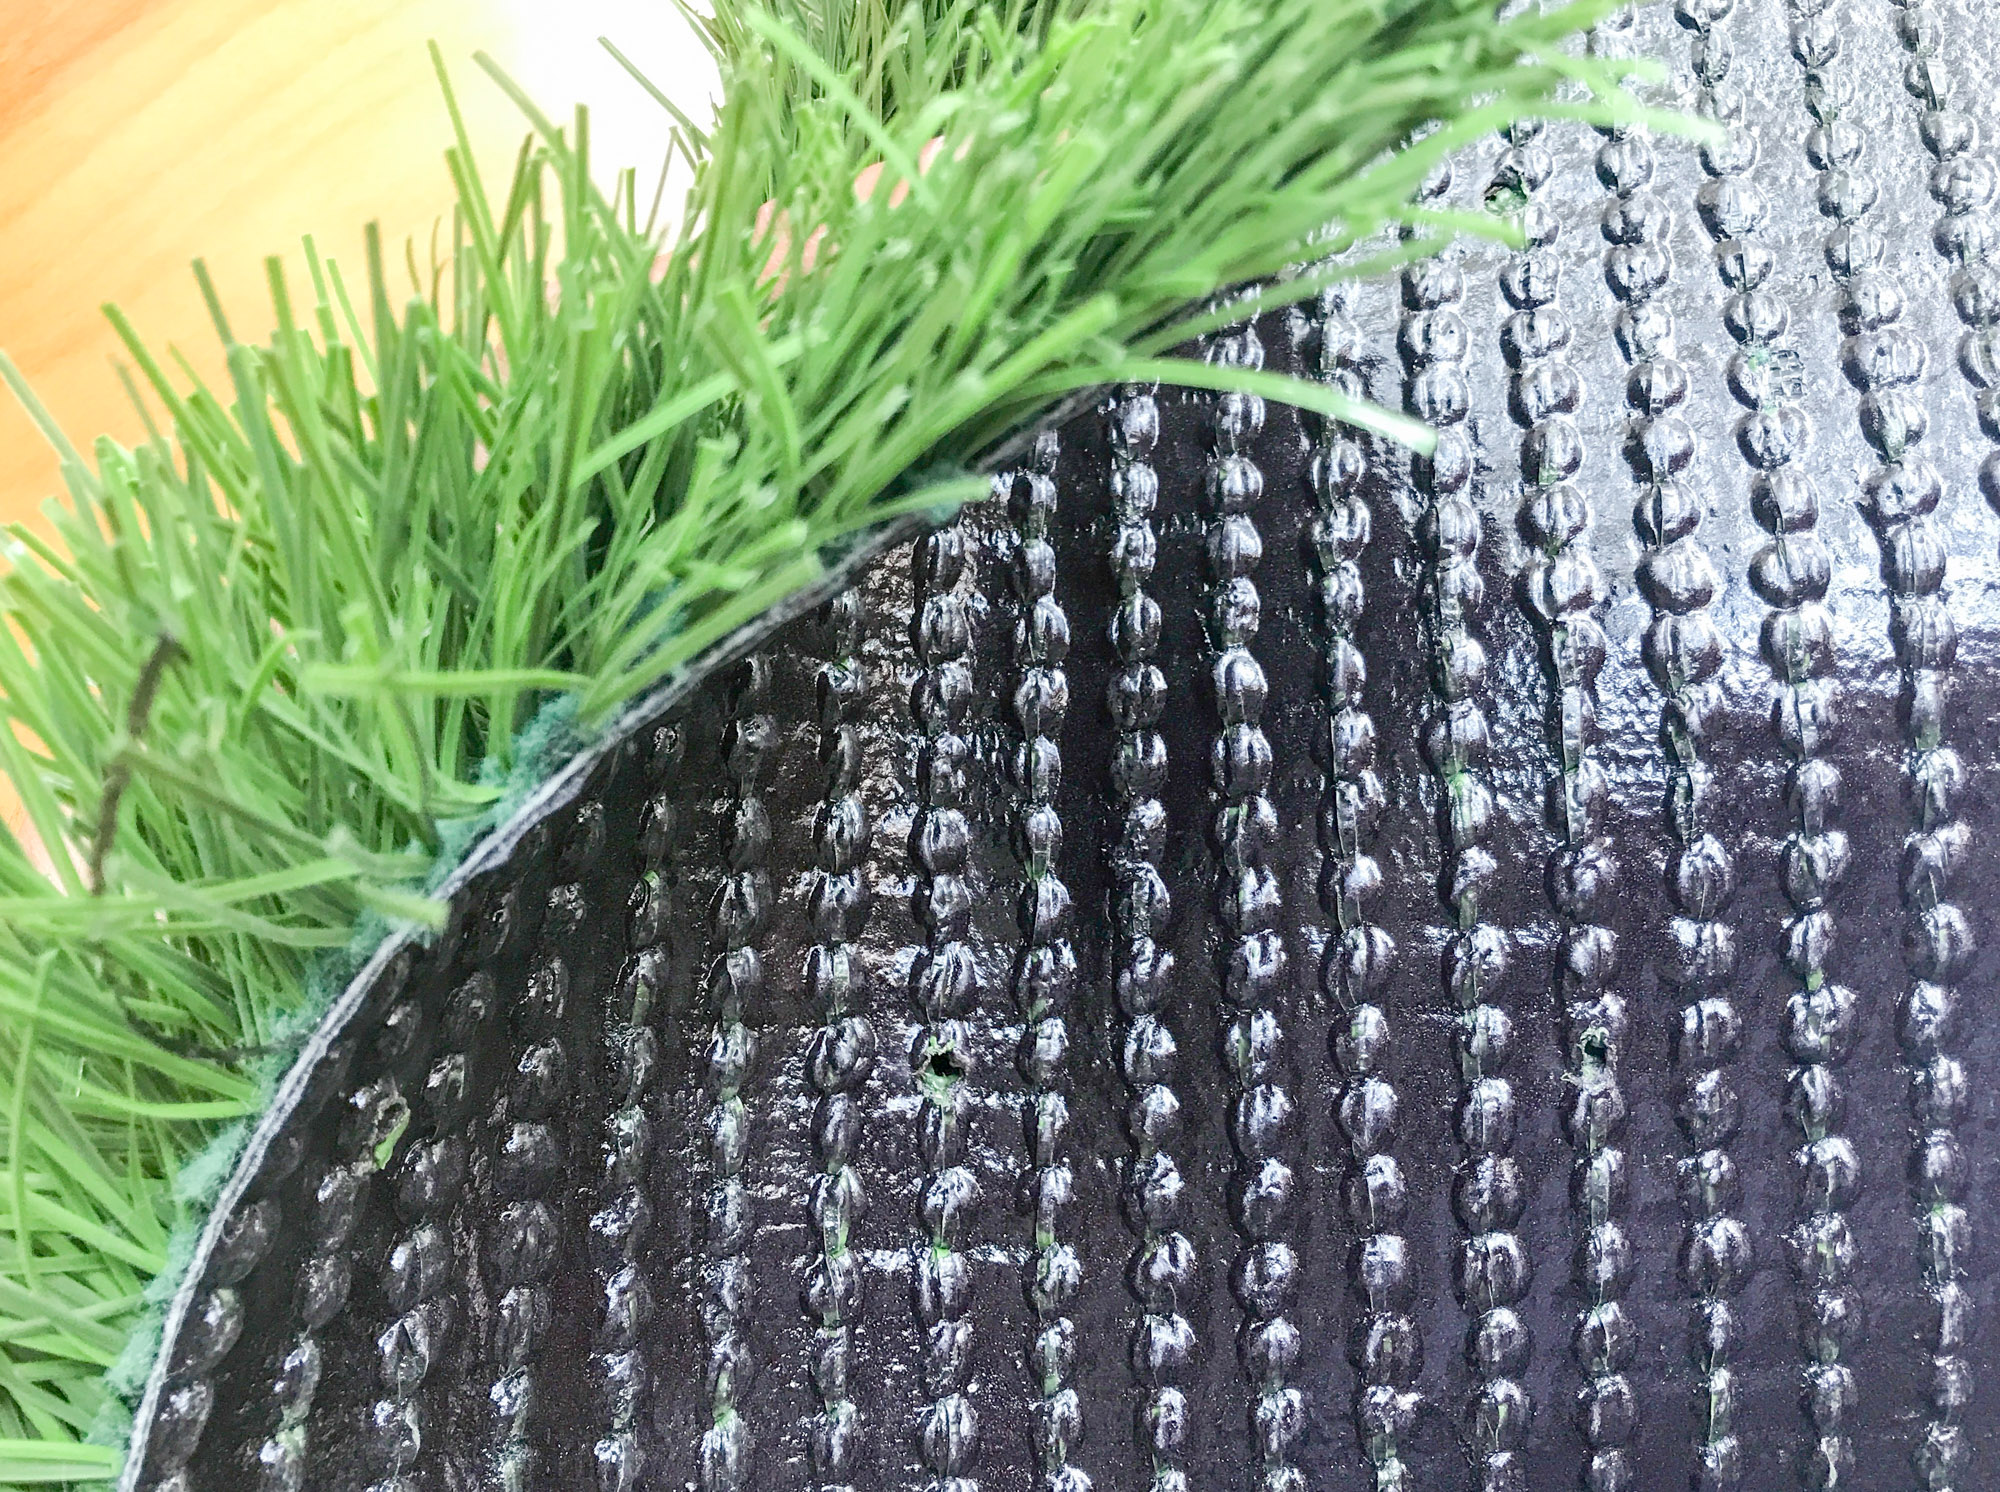 Synthetic turf fibers and backing